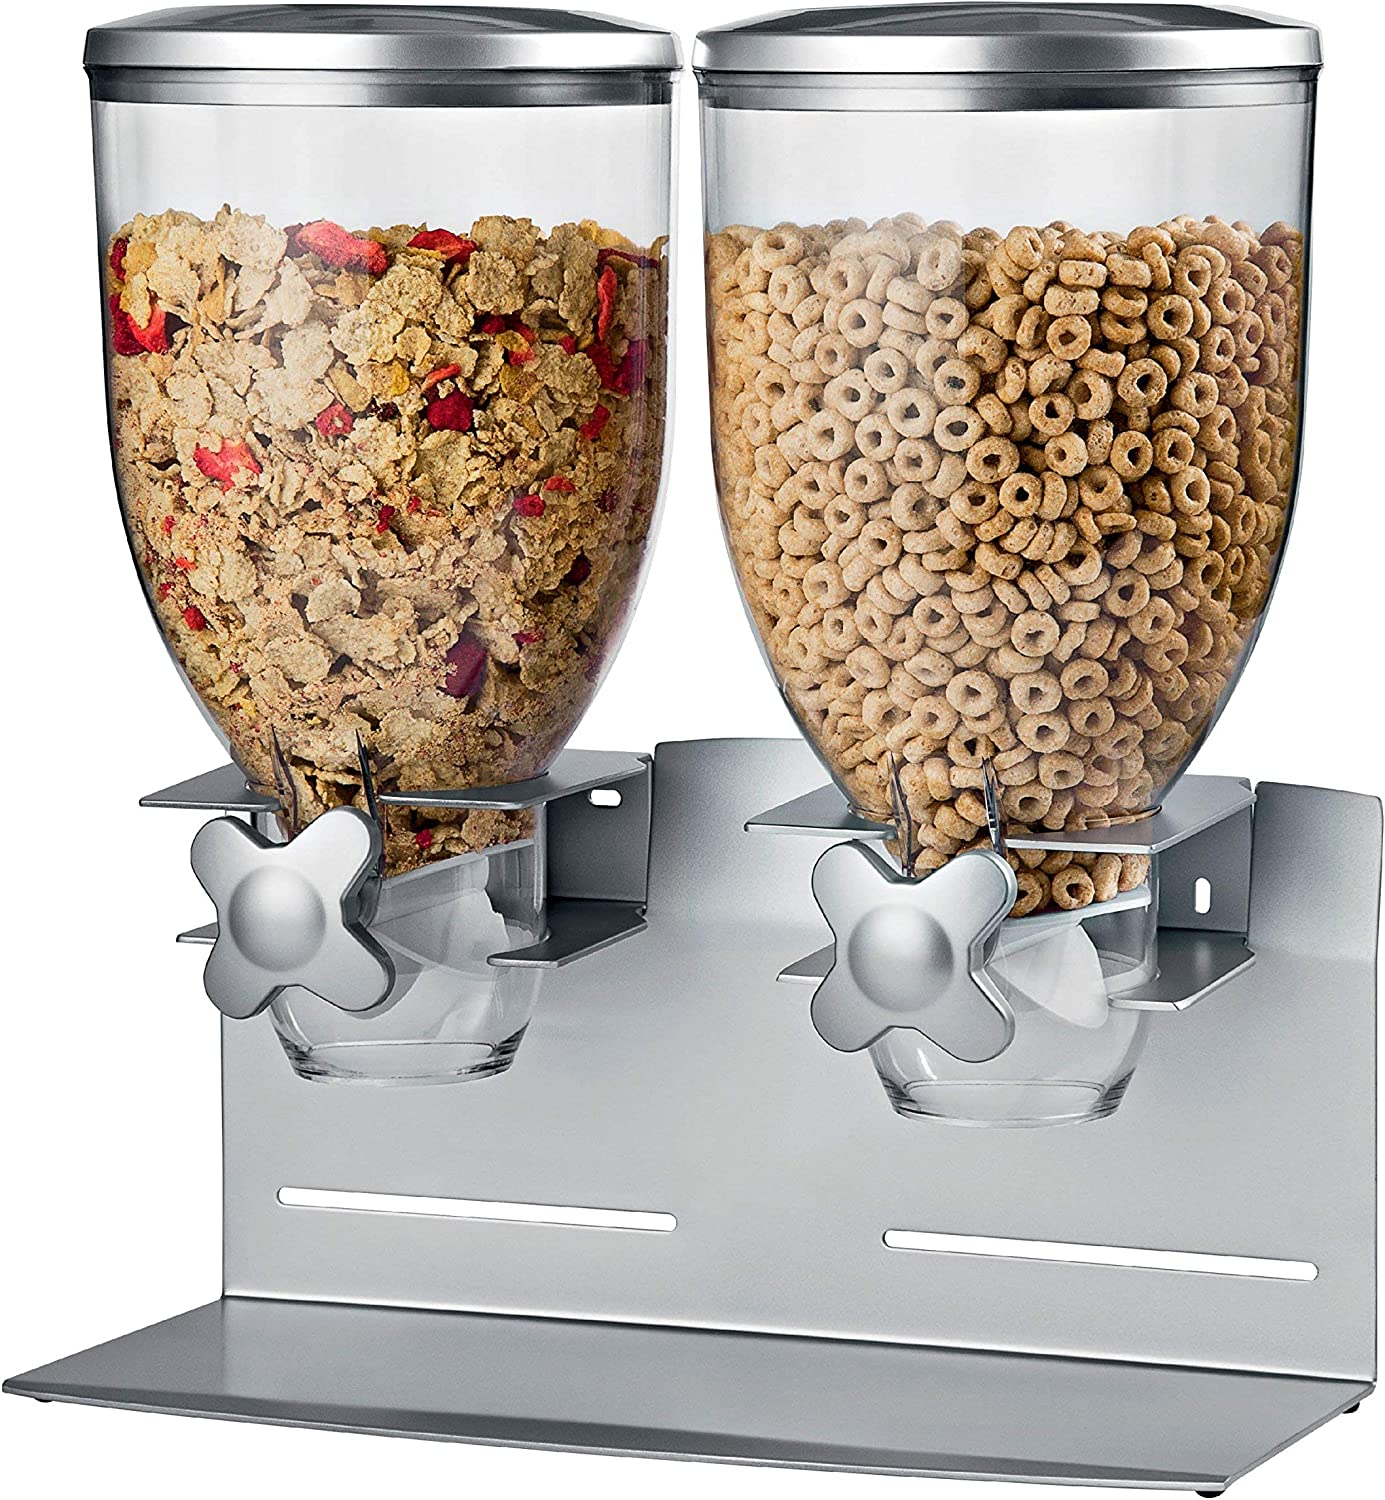 Honey-Can-Do KCH-06157 Professional Edition Dry Food Double Dispenser with Metal Countertop/Wall Mount, Dual Control, 17.5-Ounce Capacity, Silver, 17.5-Ounce Capacity